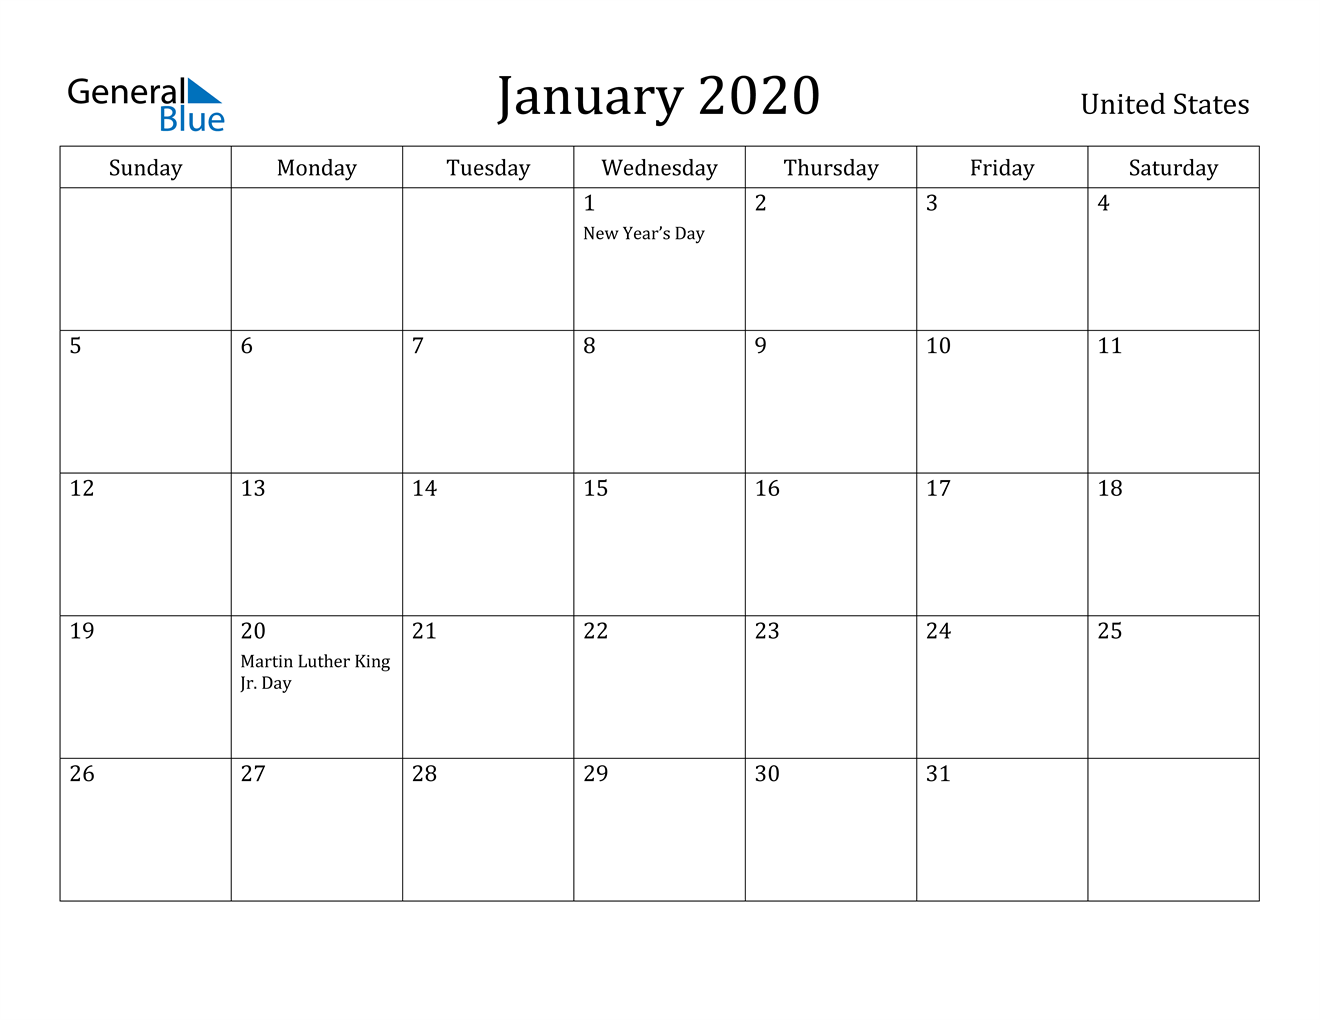 Image of January 2020 United States Calendar with Holidays Calendar